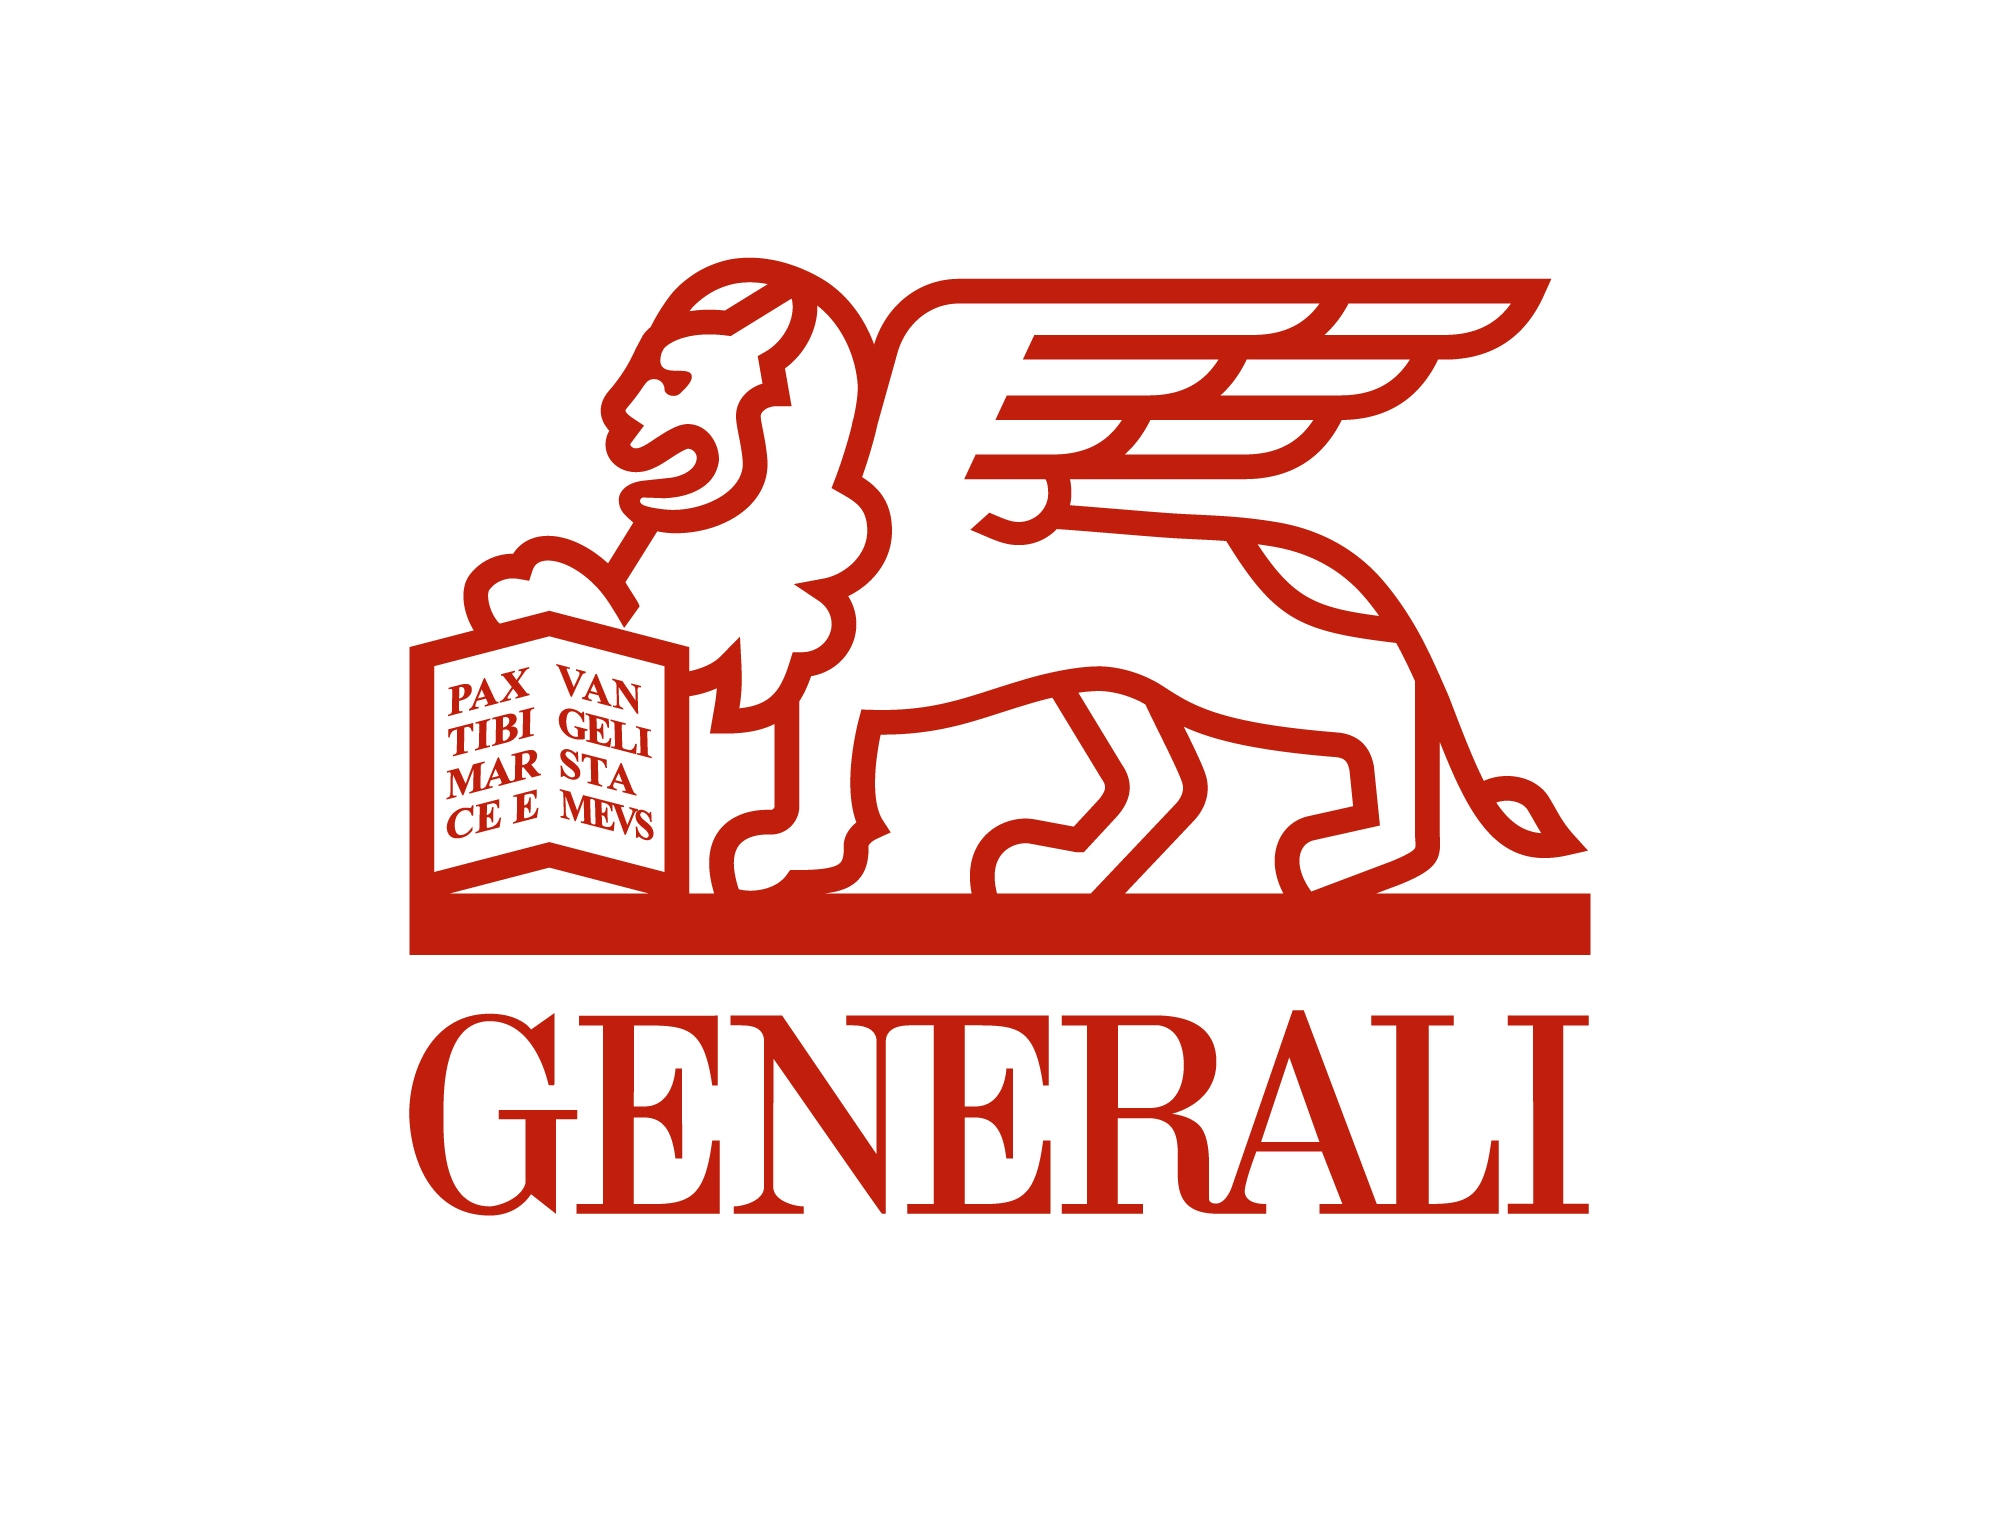 Generali Employee Benefits